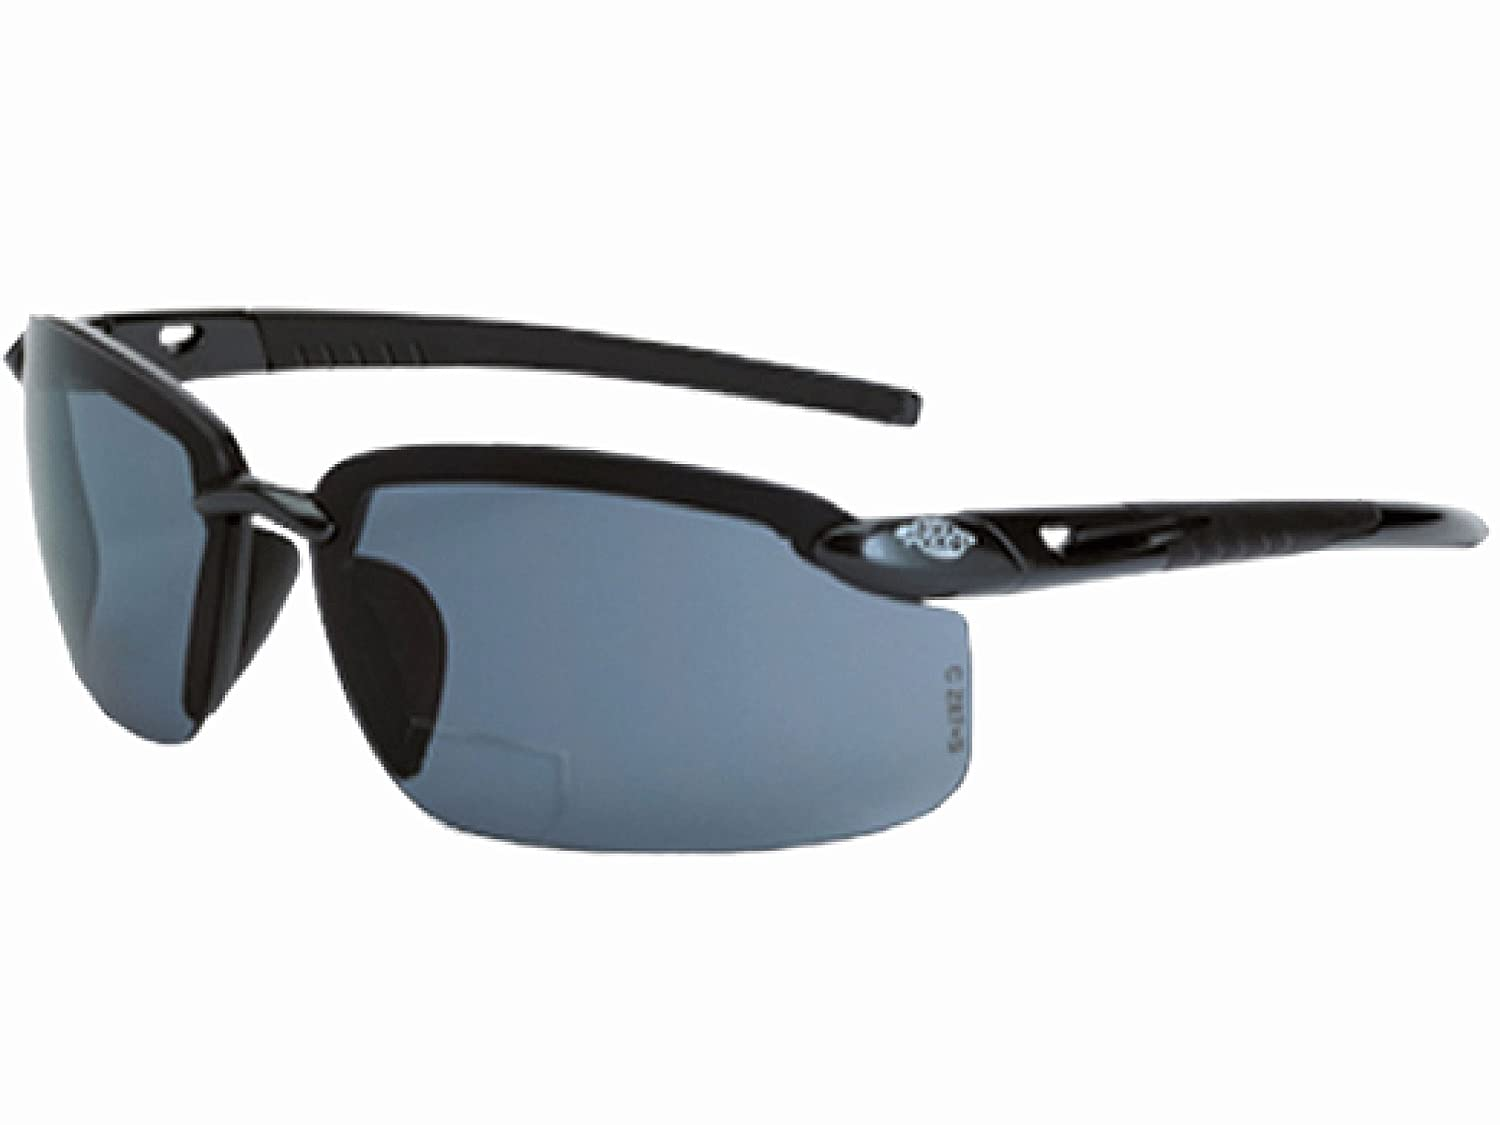 Amazon.com: Crossfire ES5 - Gafas de seguridad bifocal de ...